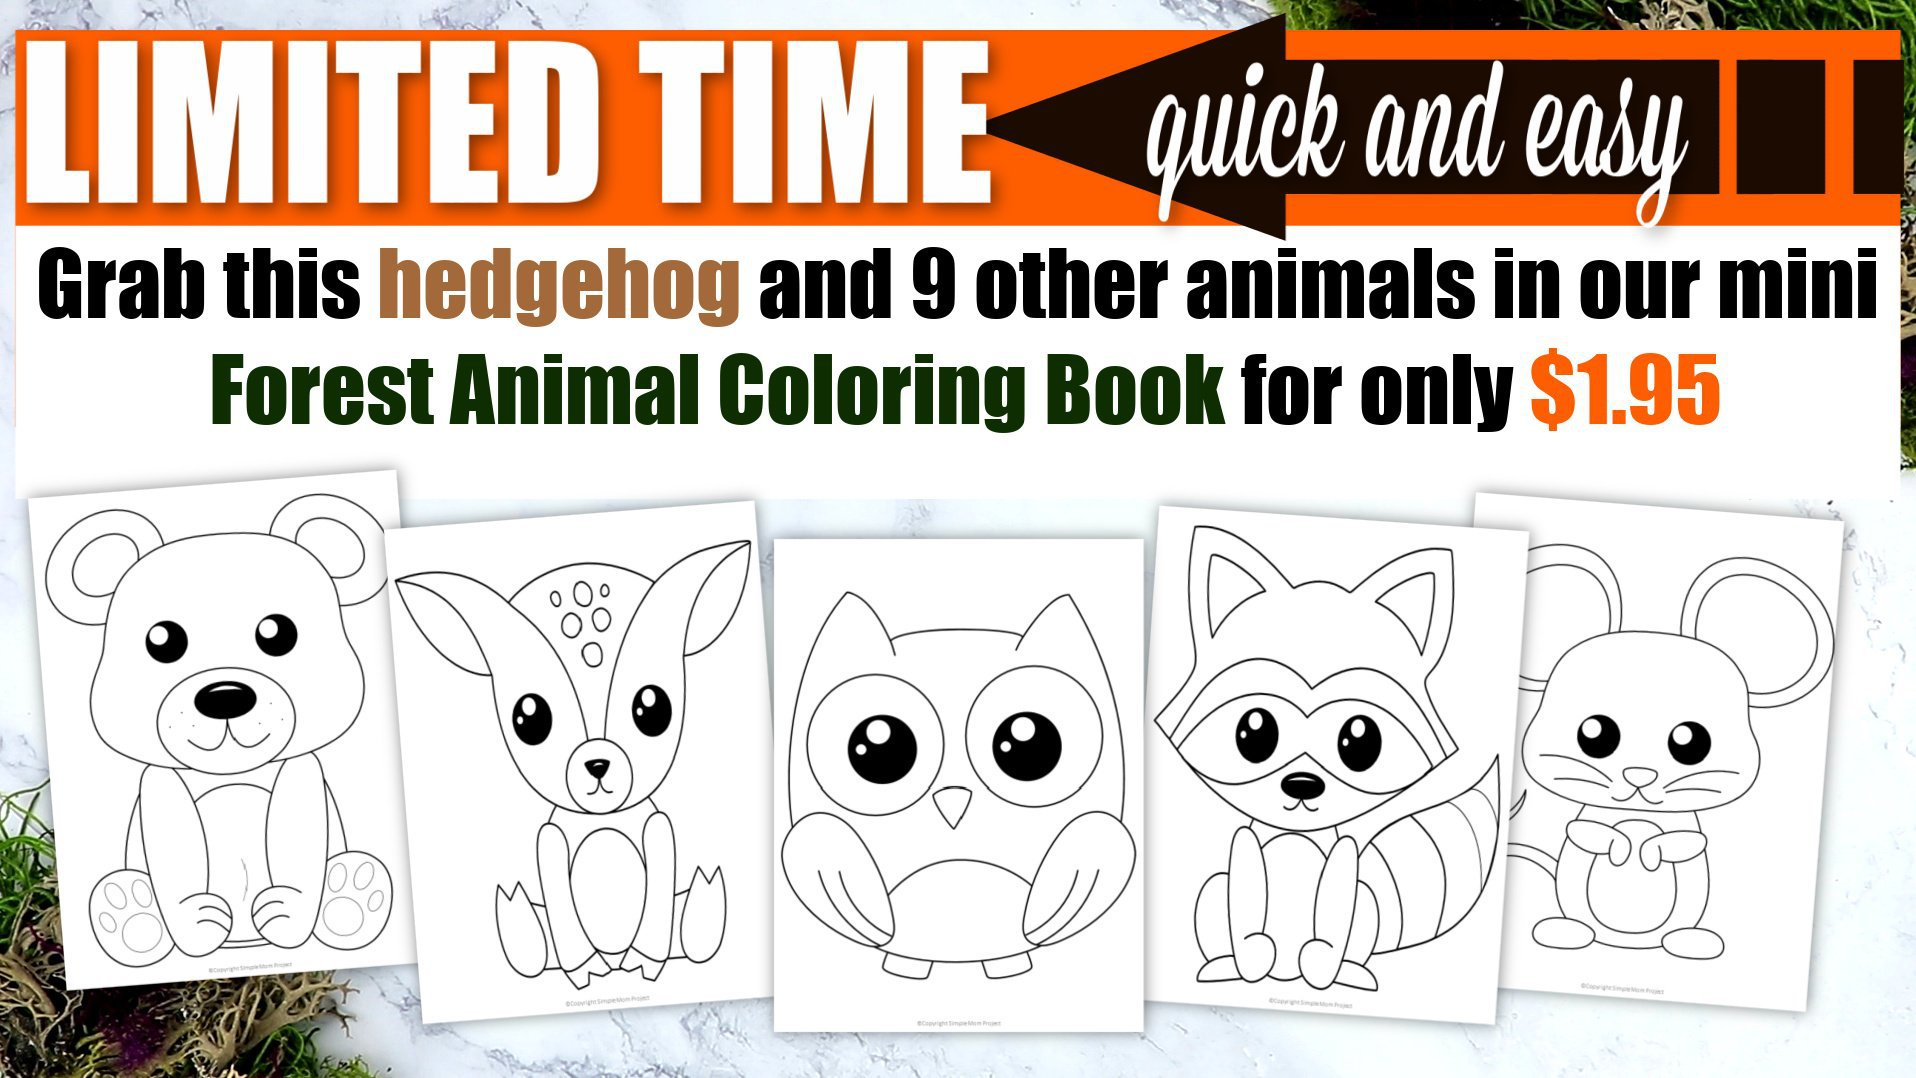 Printable Woodland Forest hedgehog Coloring Page for Kids Preschoolers Toddlers and kindergartners